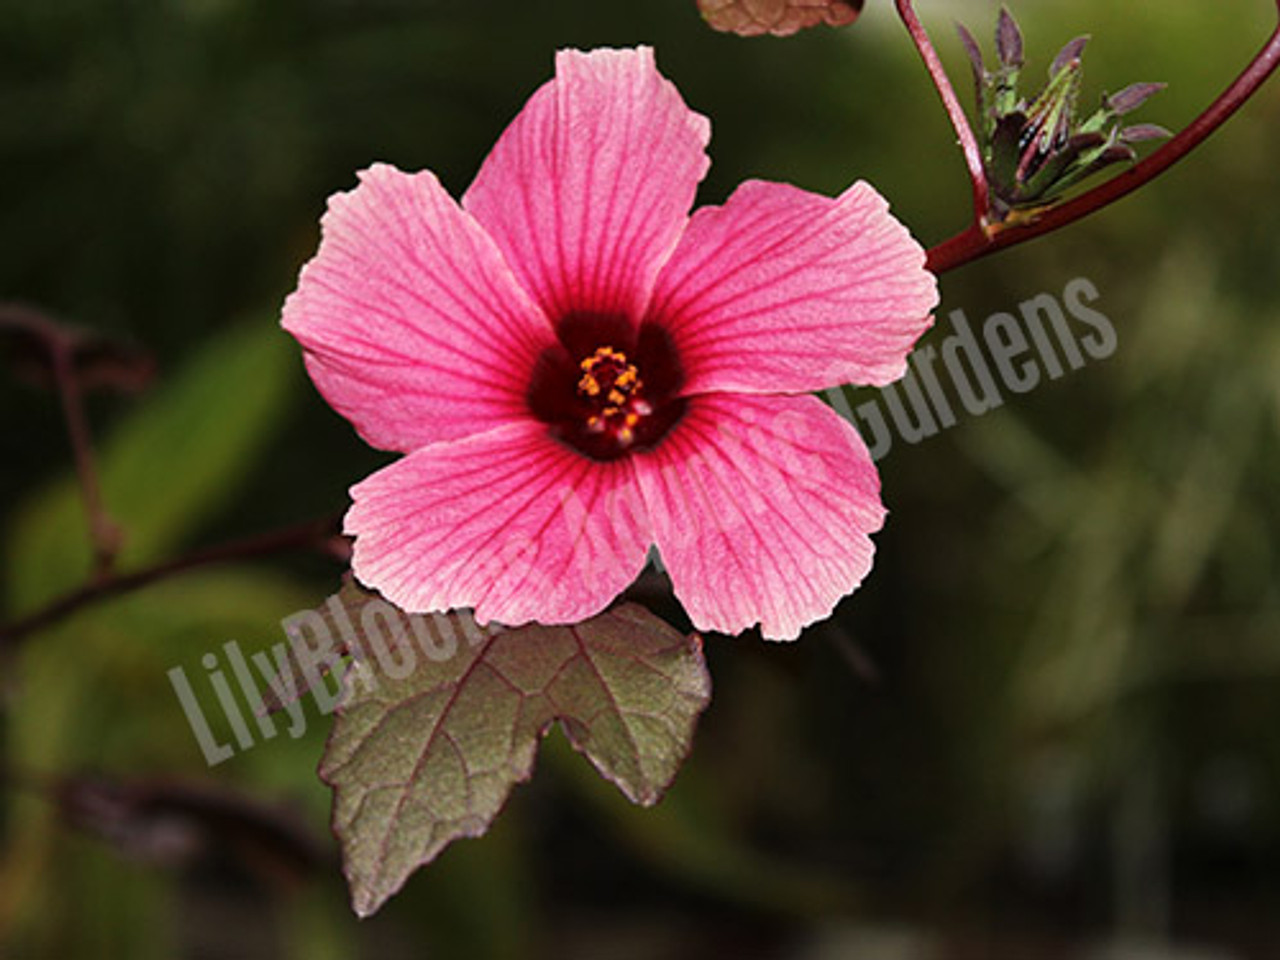 Red Night Blooming Hibiscus (Hibiscus Acetosella)